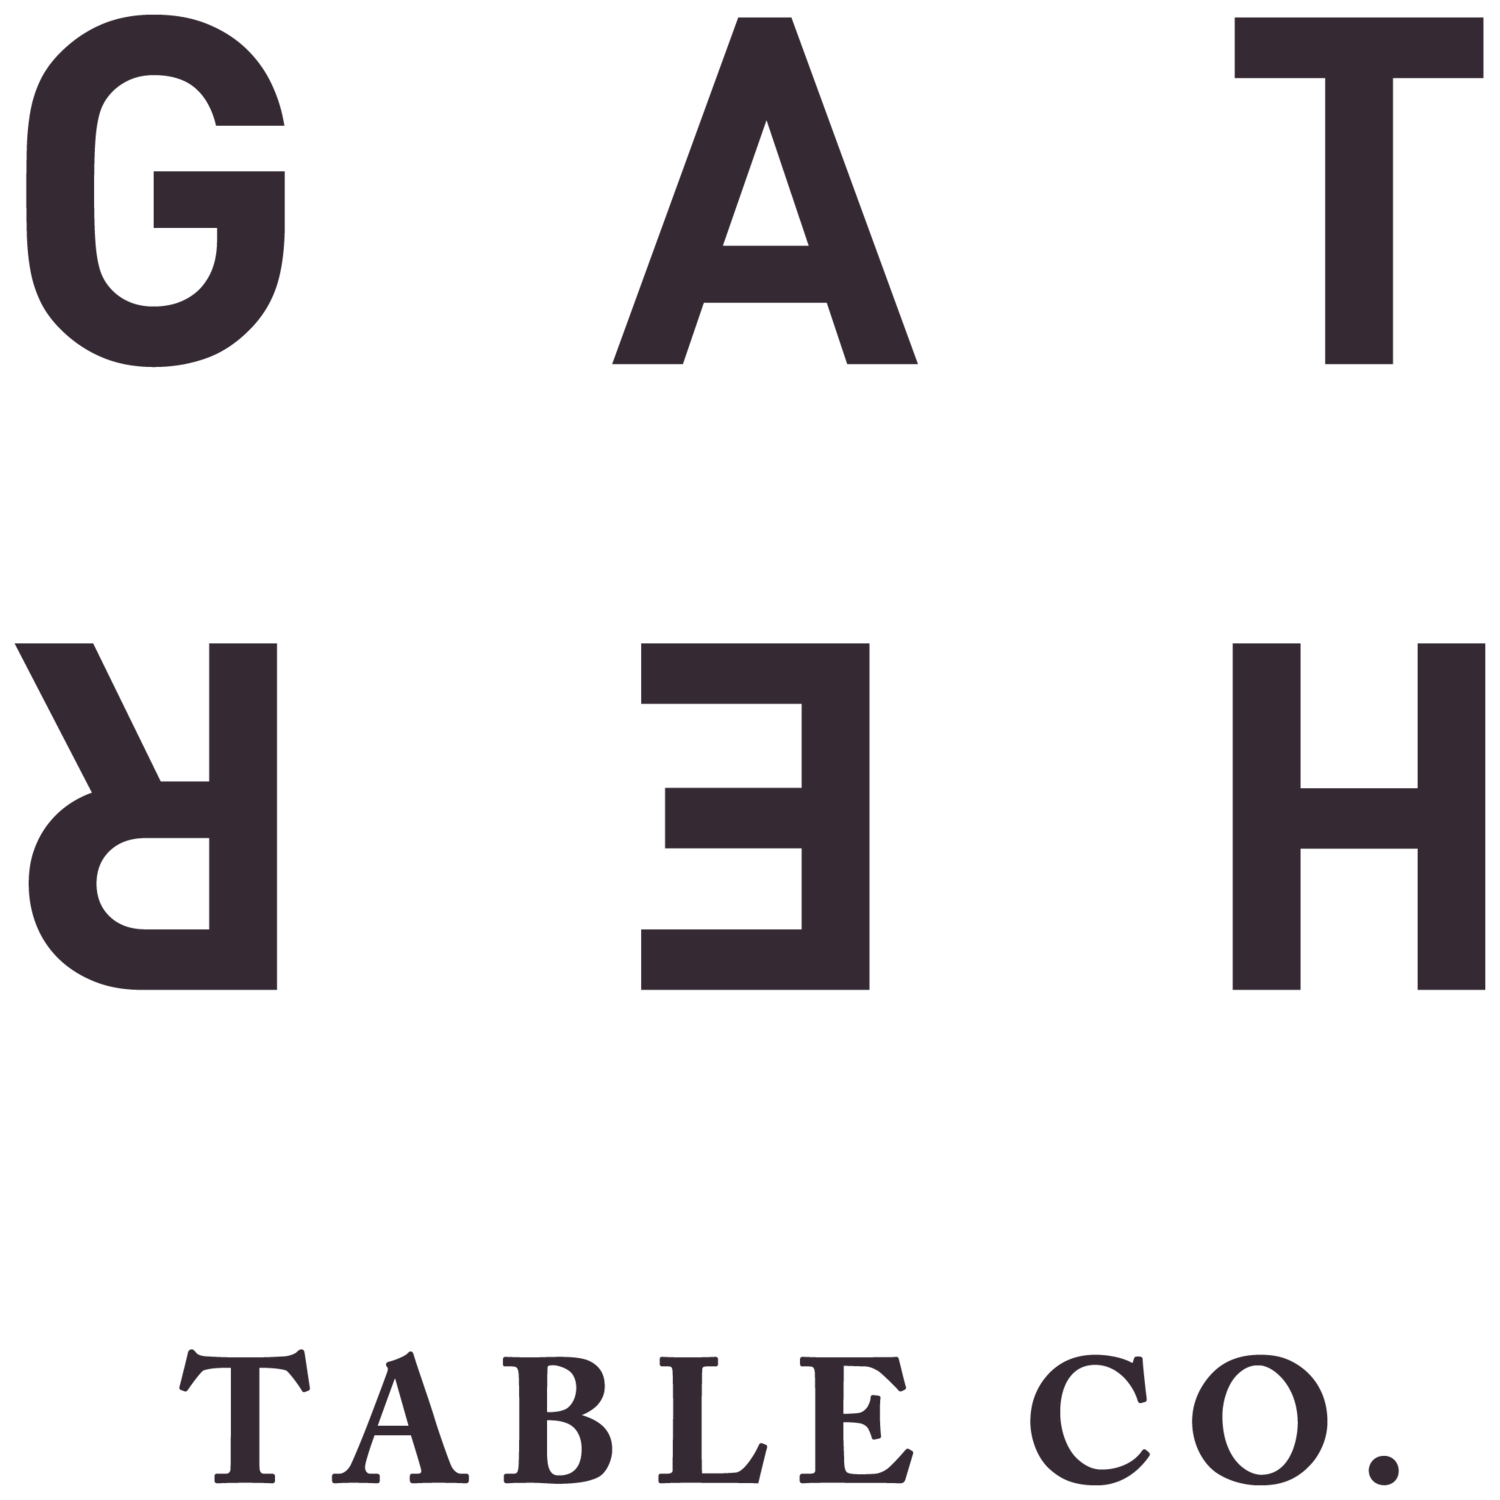 Gather Table Co.